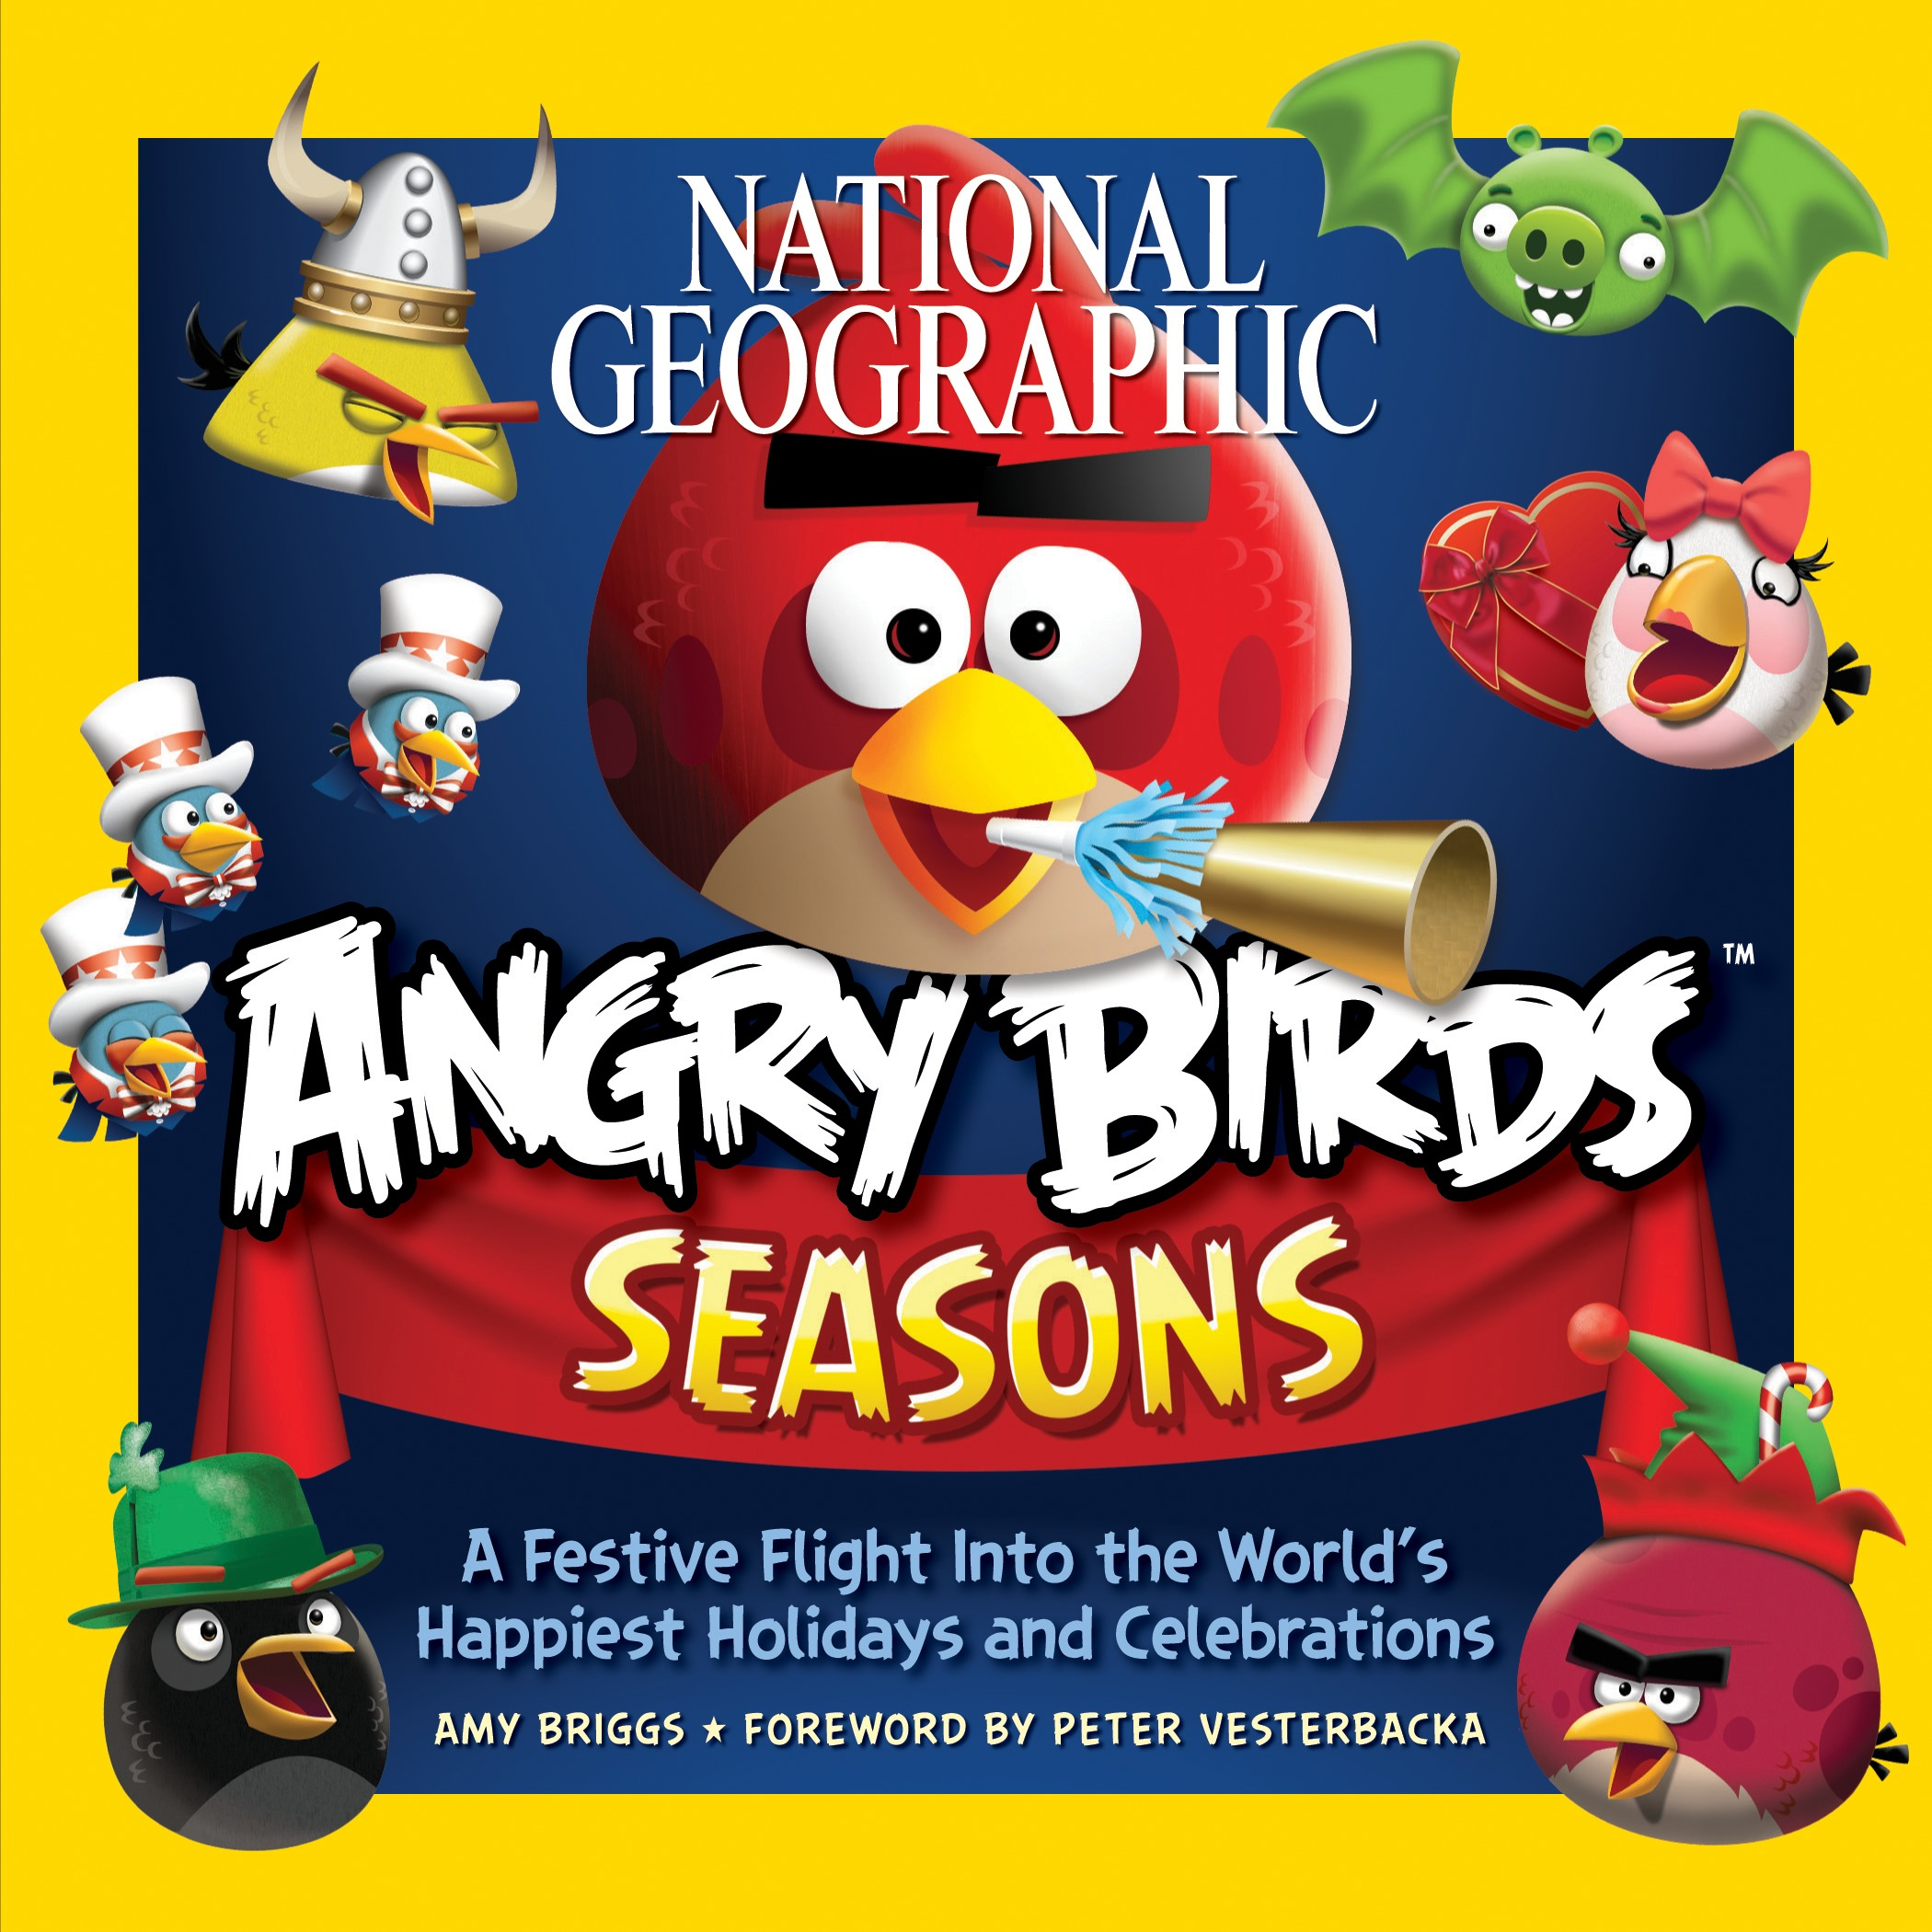 National Geographic Angry Birds Seasons : A Festive Flight Into the World's Happiest Holidays and Celebrations